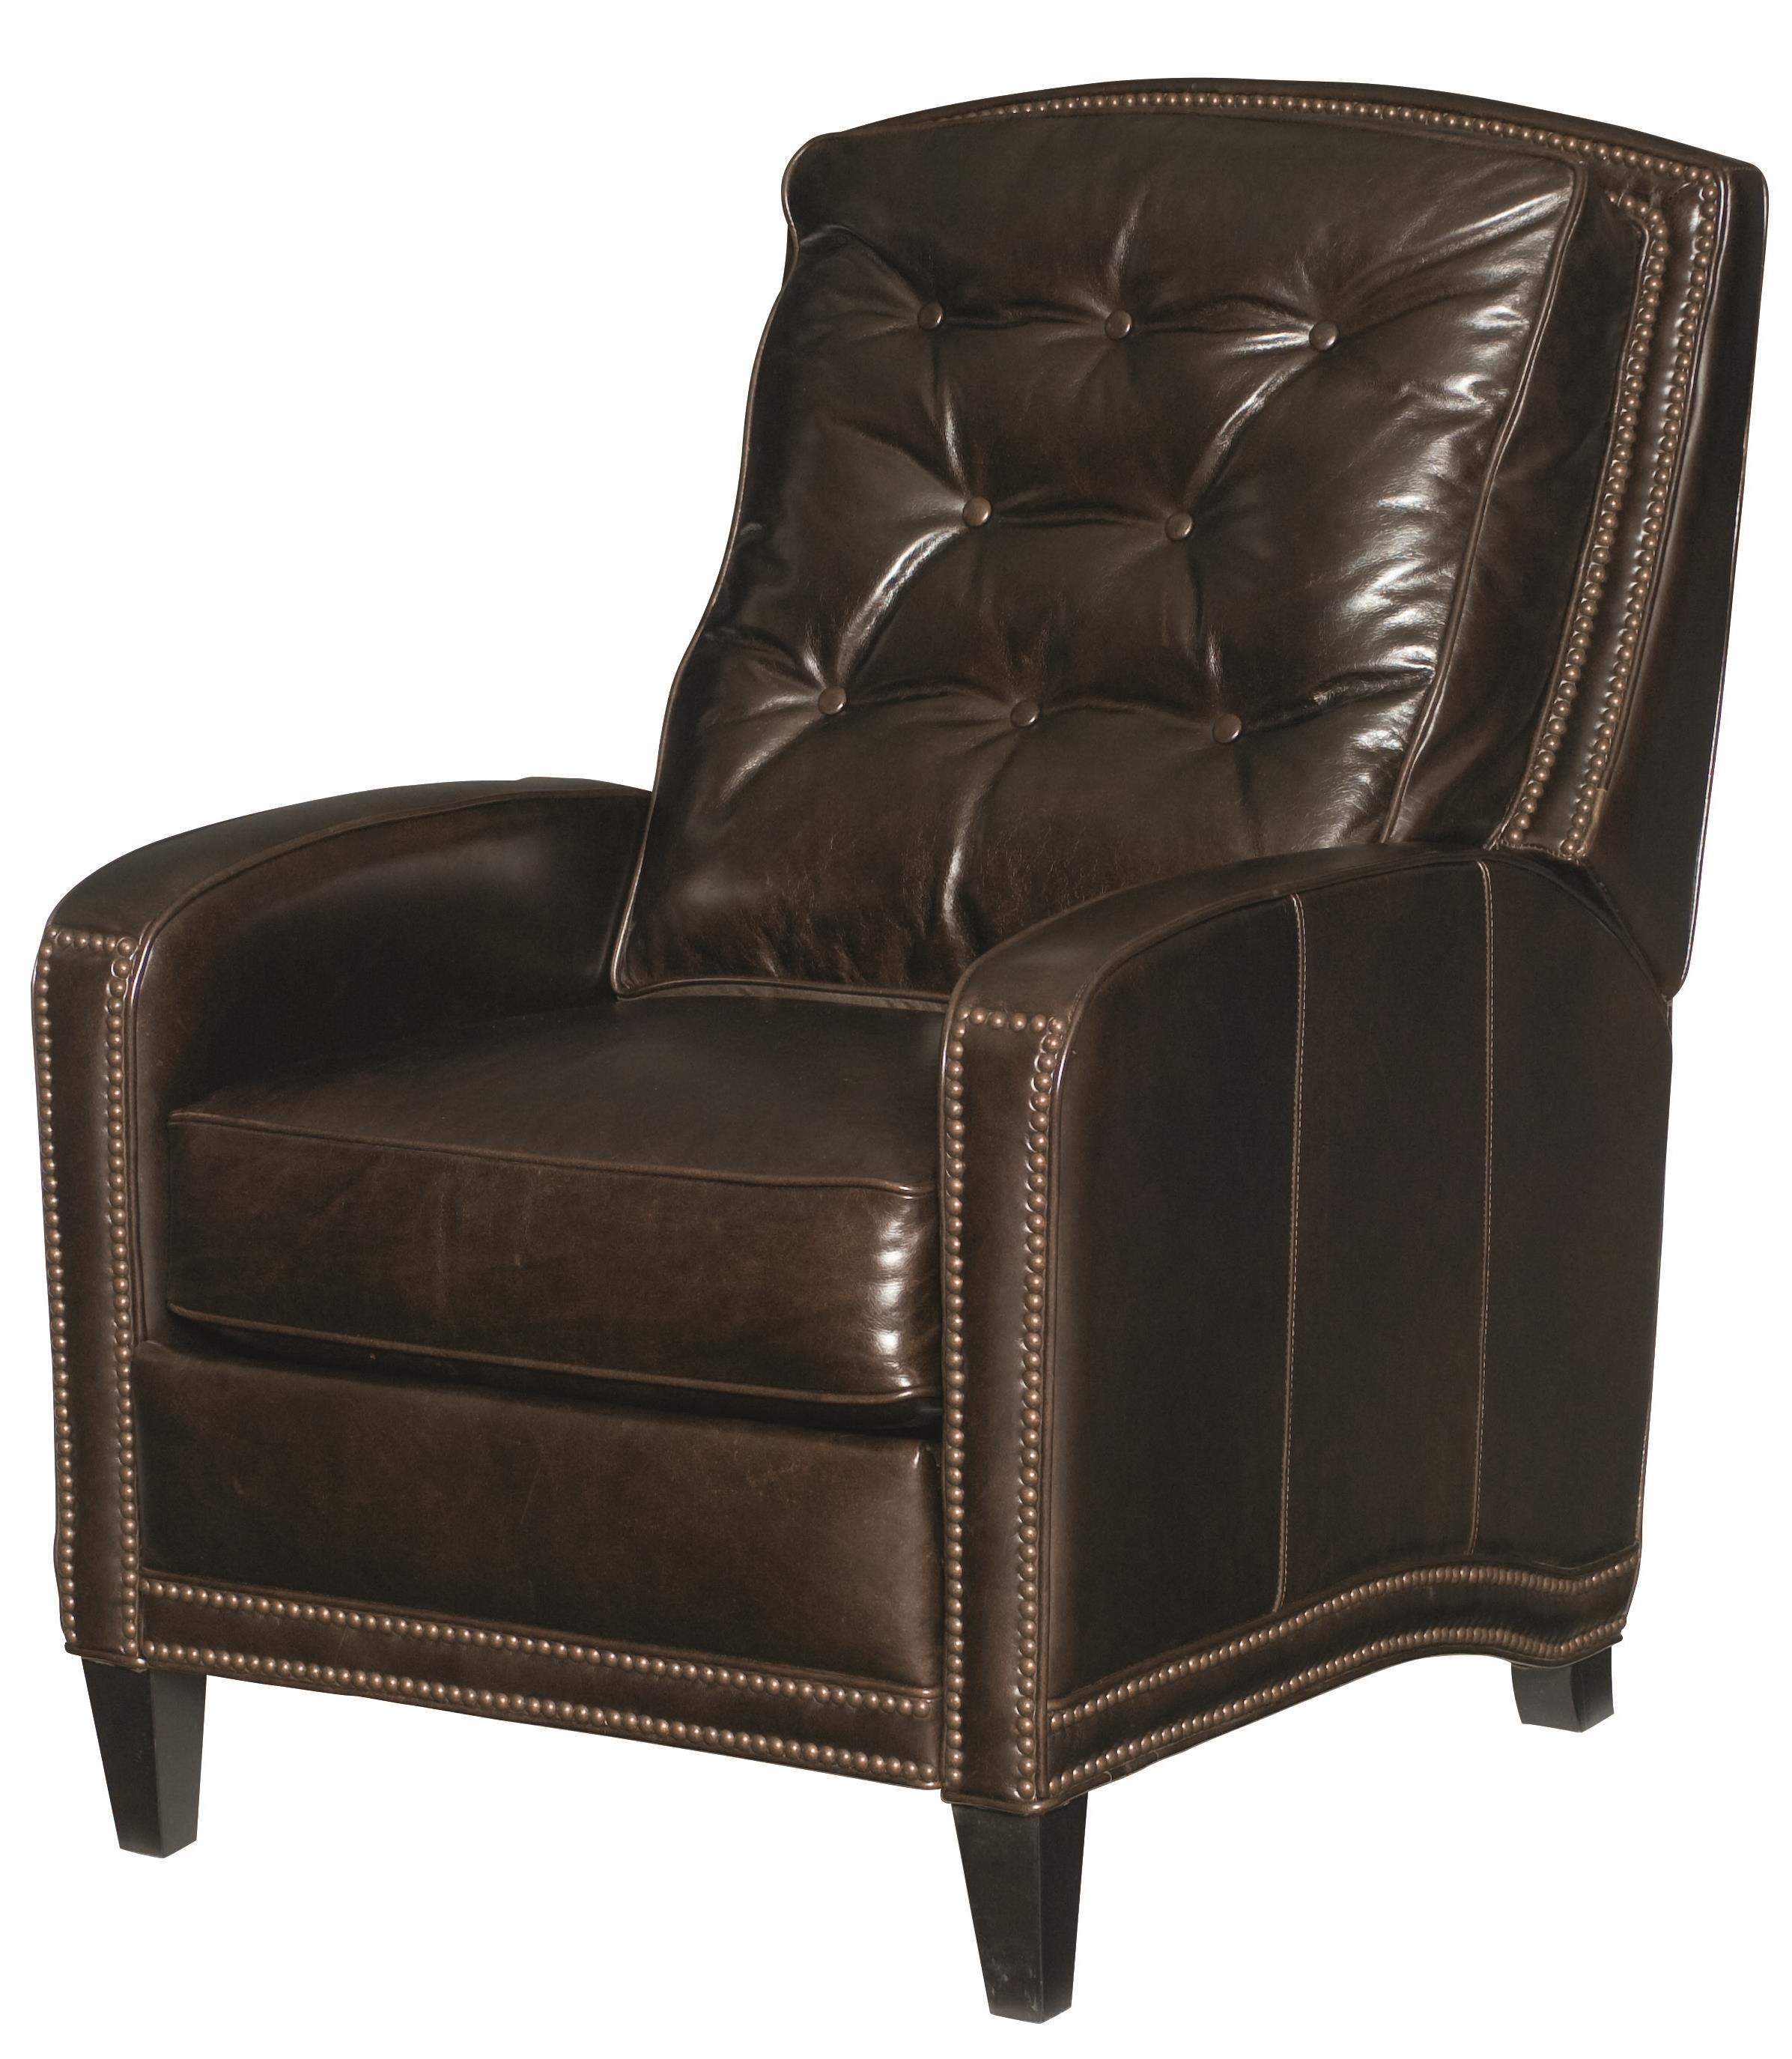 Bernhardt Jennings Transitional Style Recliner with Nailhead Accent  sc 1 st  Wayside Furniture & Bernhardt Jennings Transitional Style Recliner with Nailhead ... islam-shia.org